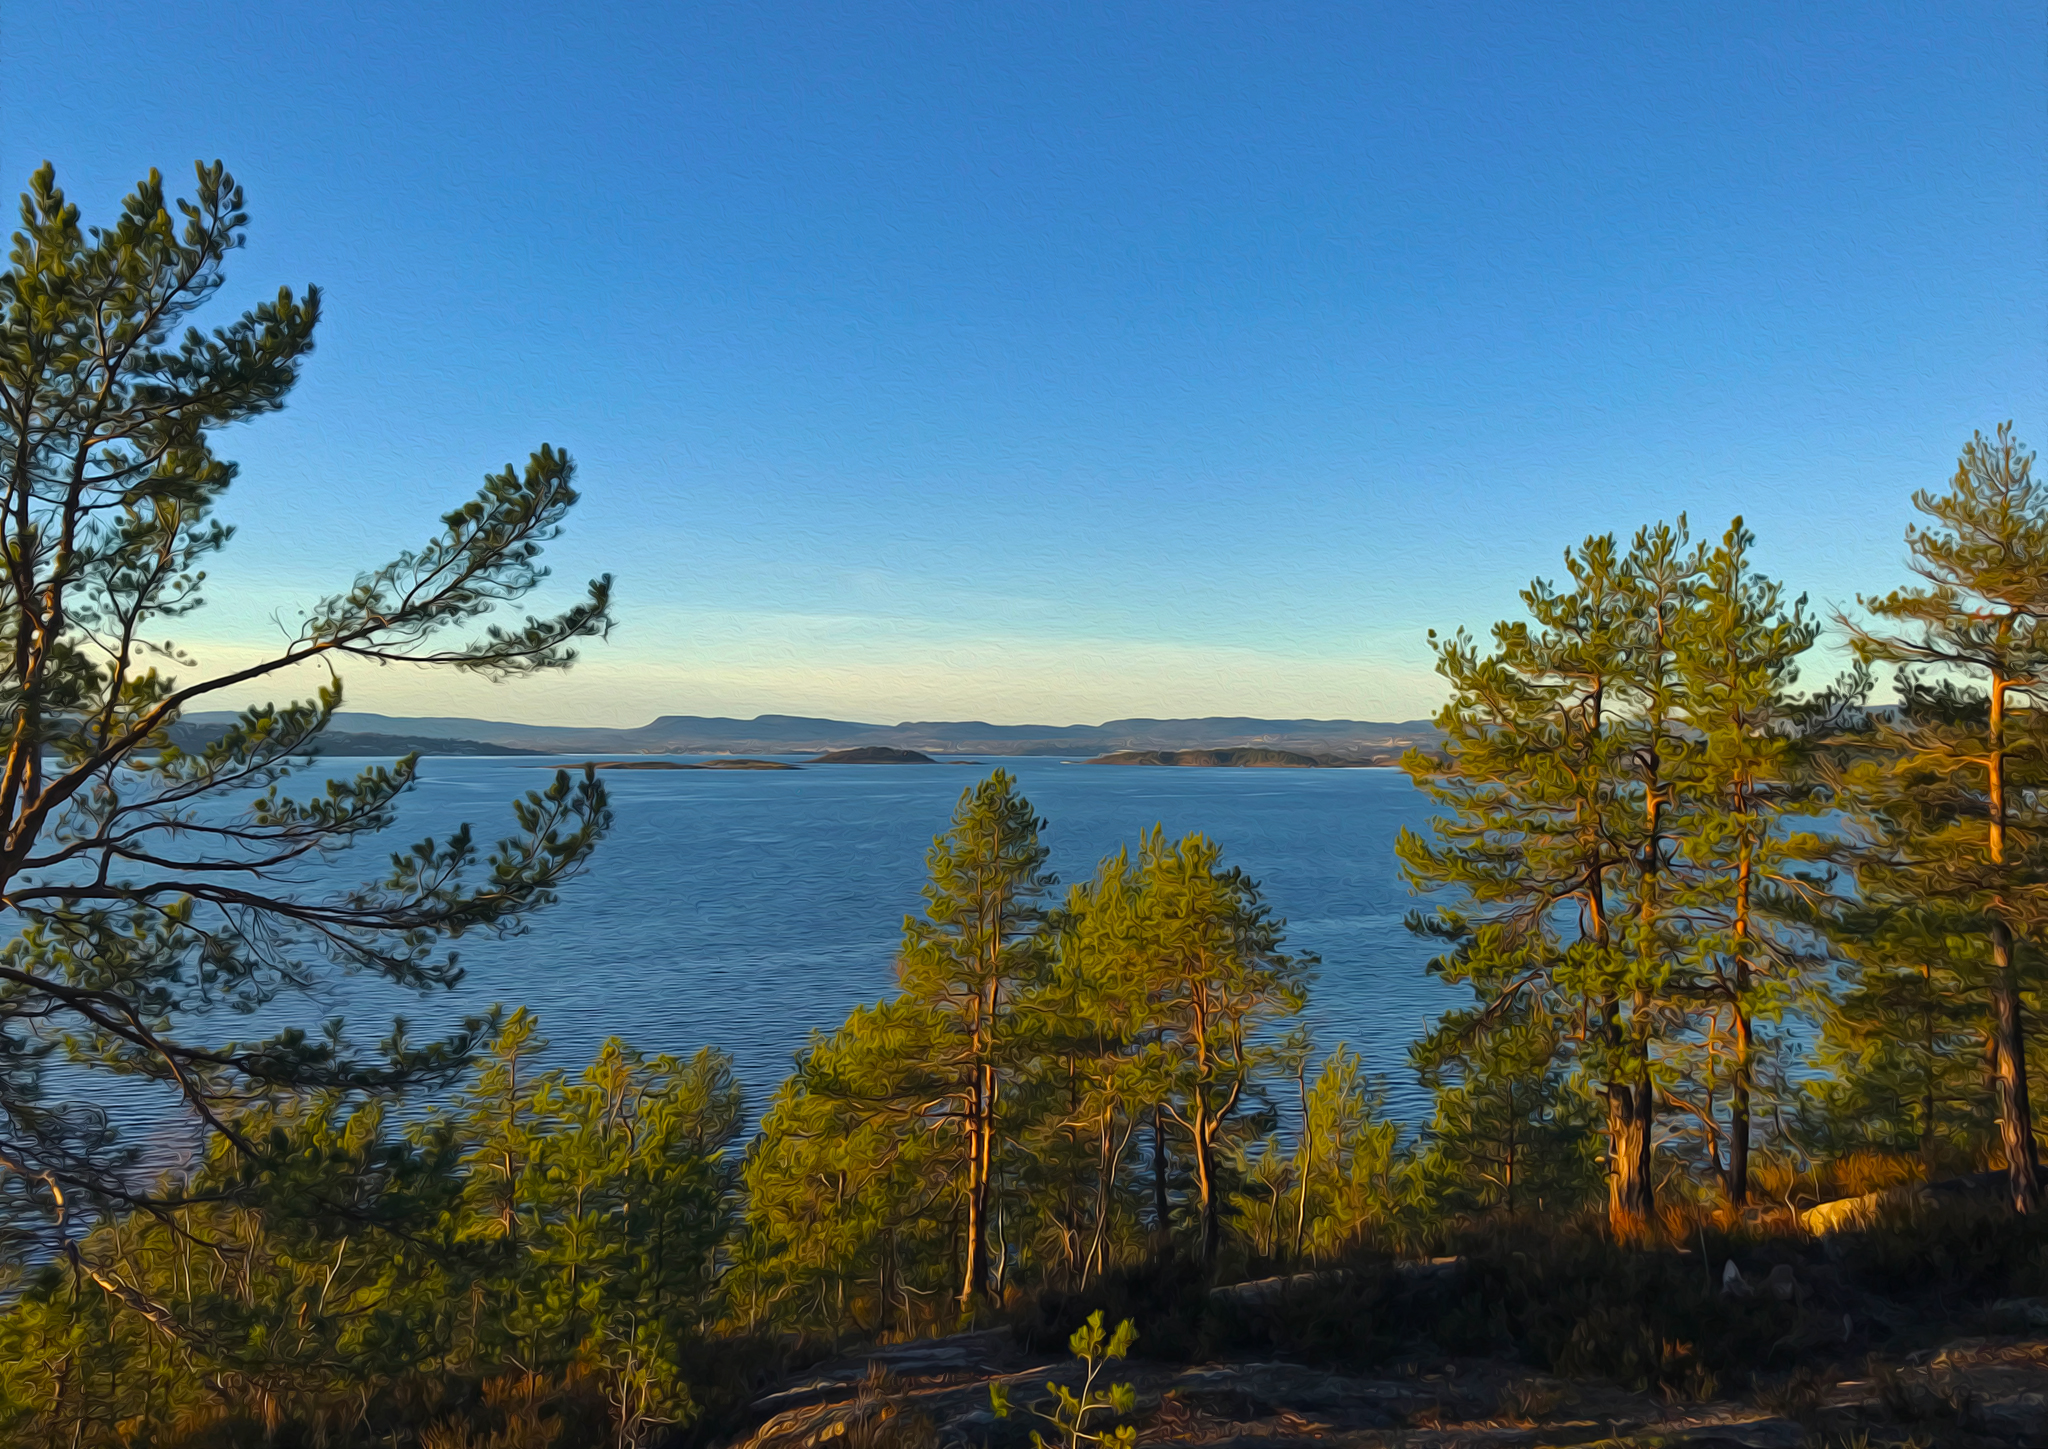 Briefly: a glimpse of Inner Oslo fjord